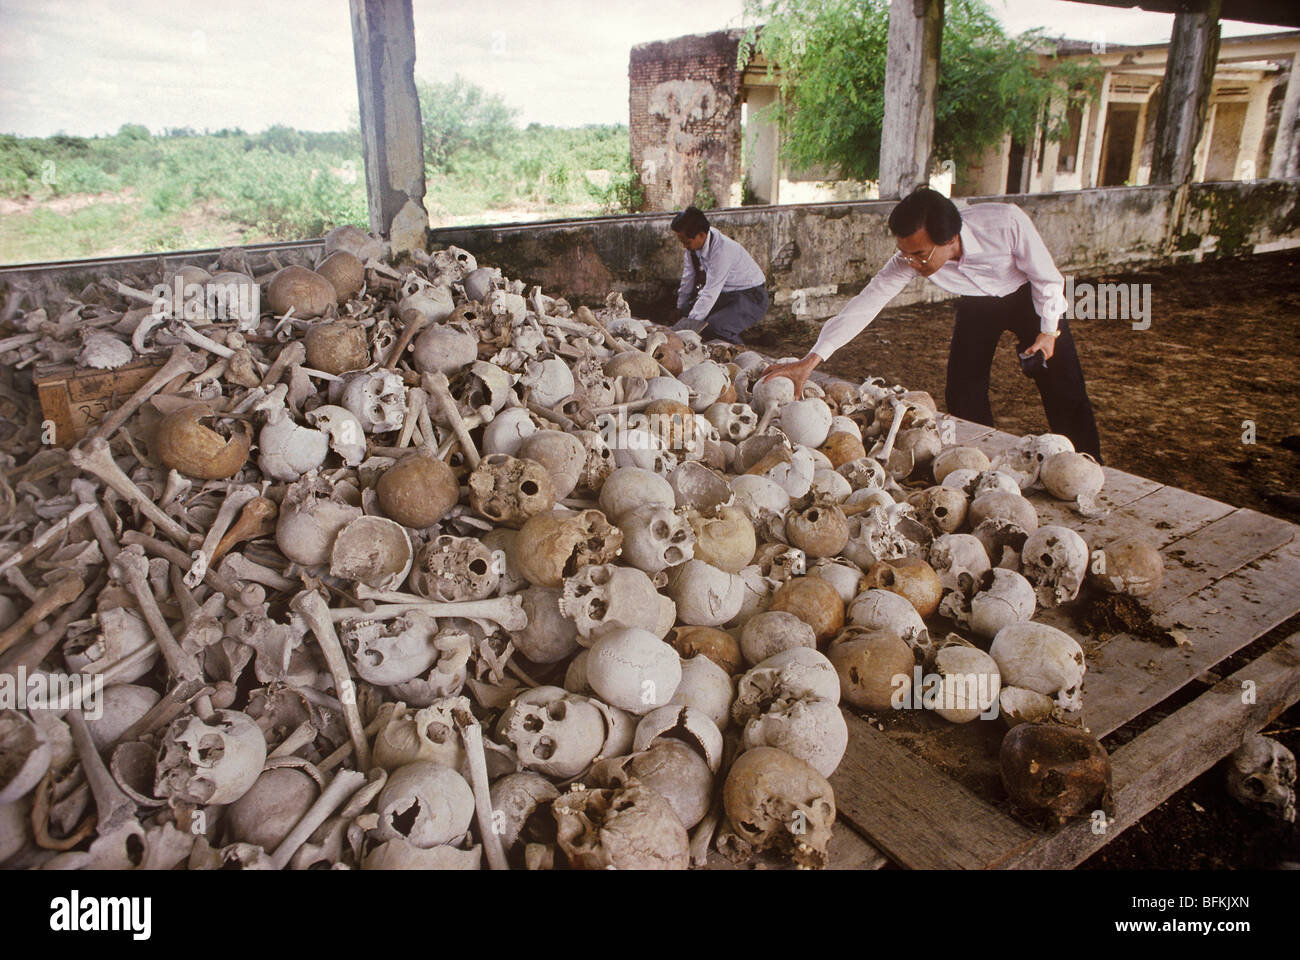 Haing Ngor, with a pile of skulls and bones of executed victims of the Pol Pot regime, - Stock Image